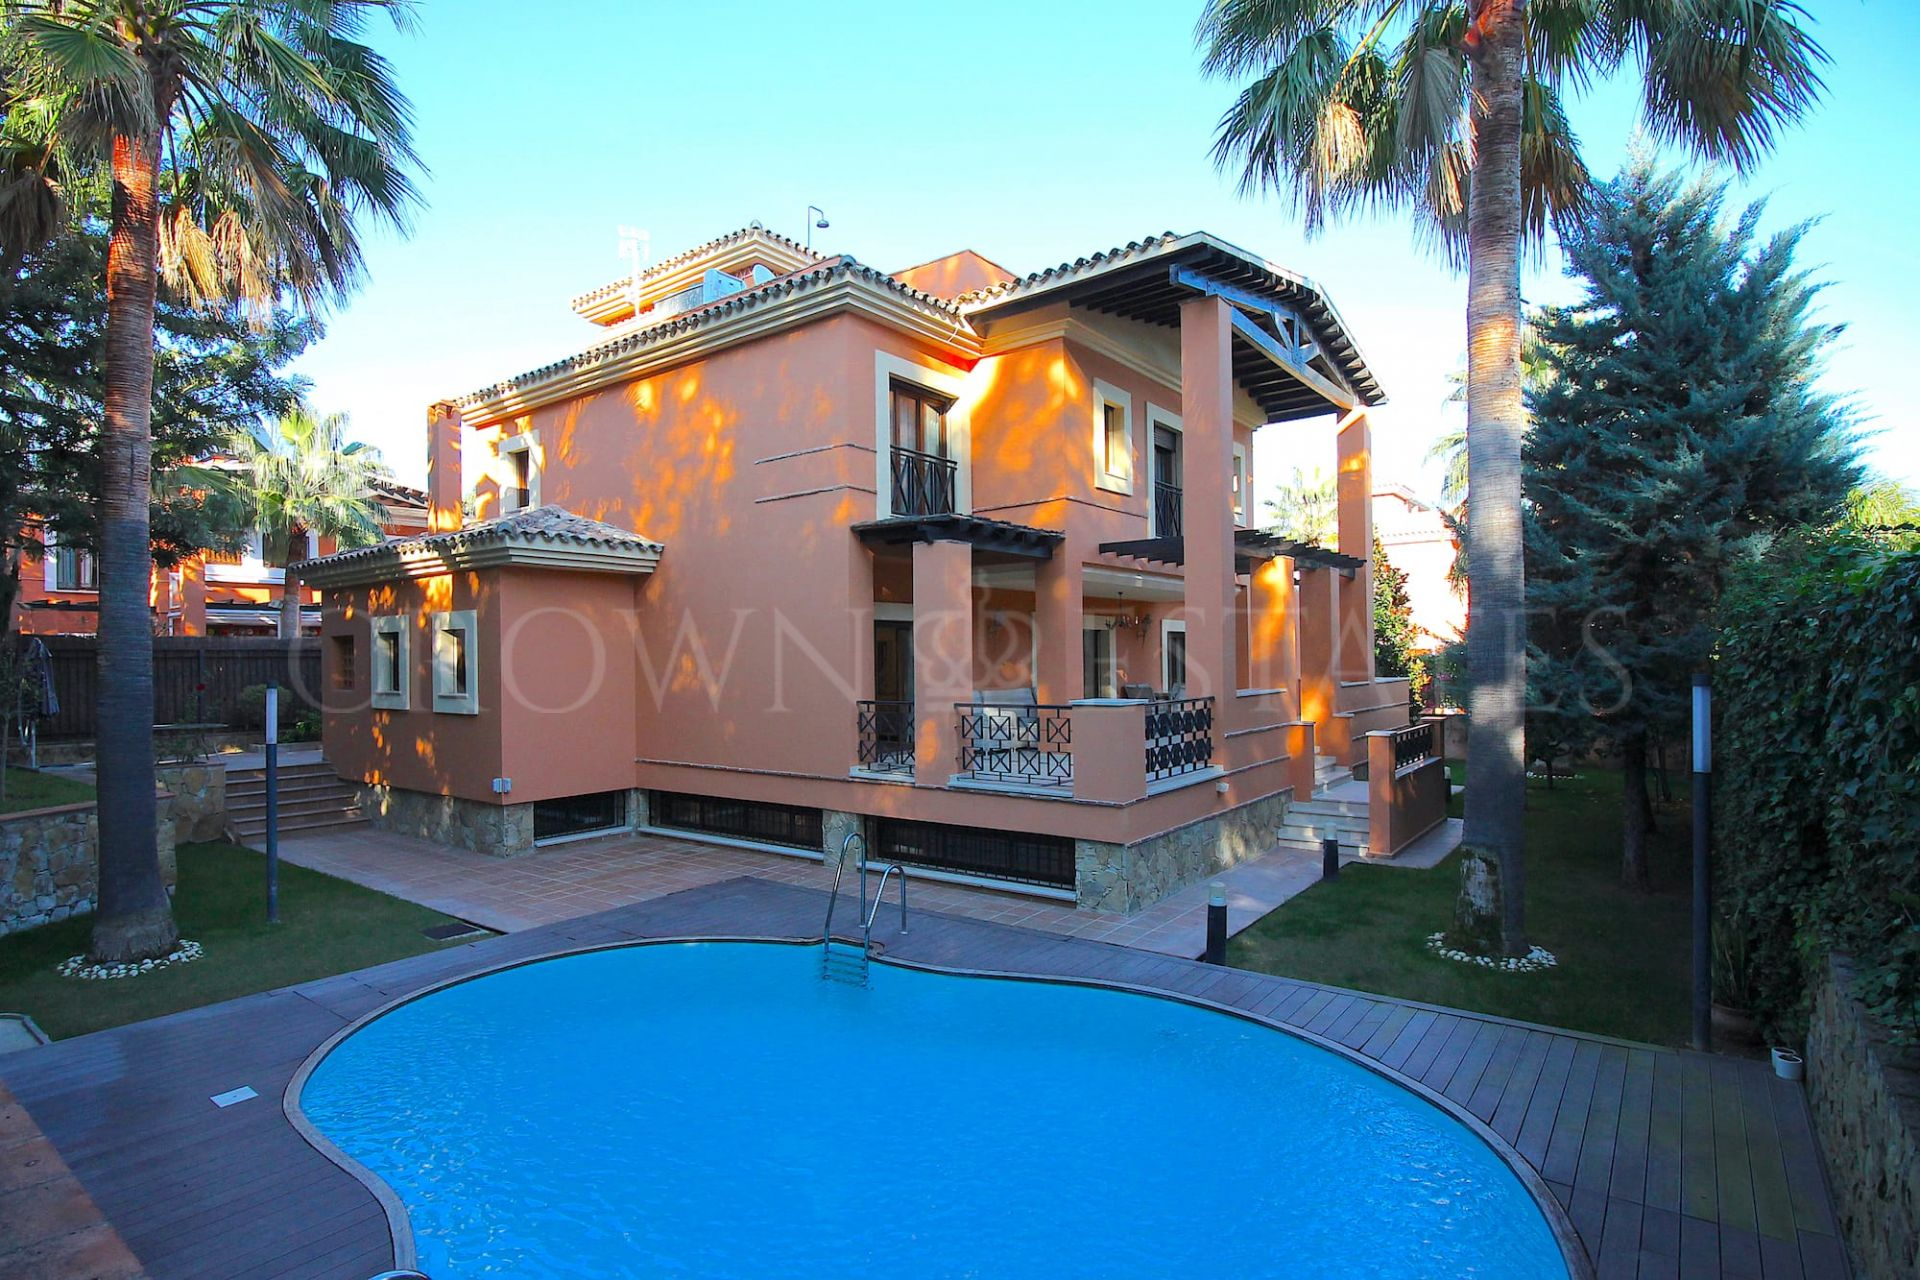 Villa in a private gated community within walking distance to the beach, La reserva de los monteros, Marbella